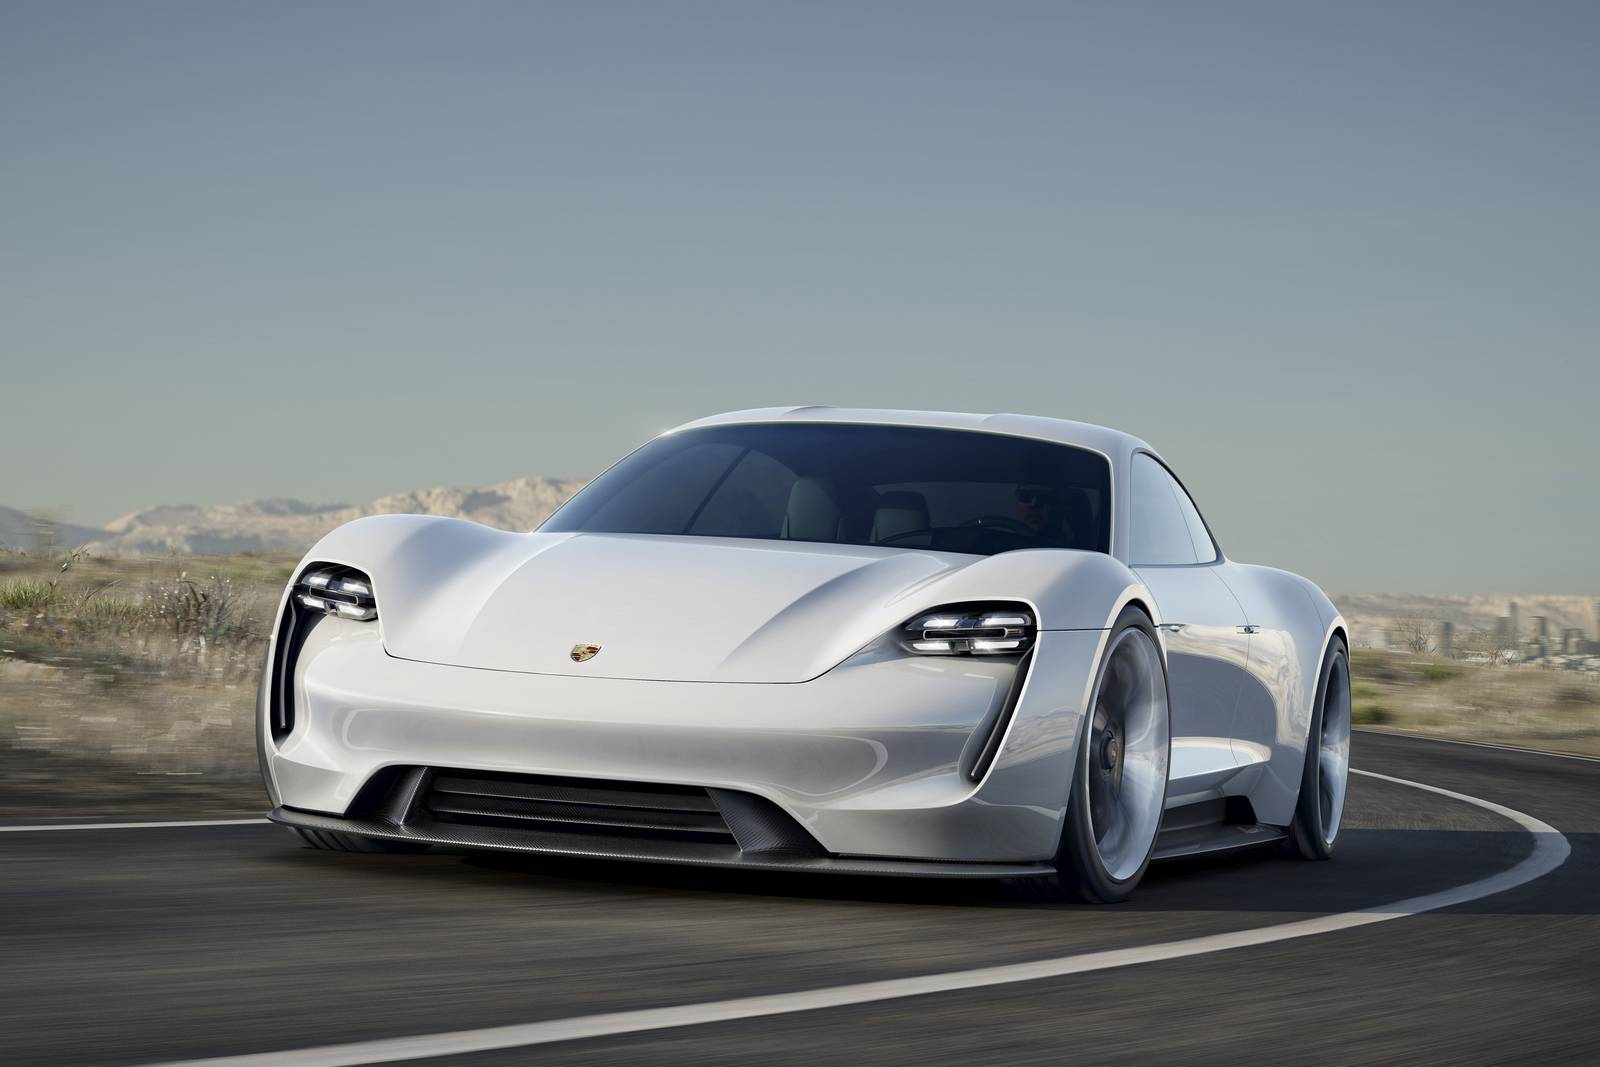 Porsche Mission E Cleared for Production, Launch Set for 2020